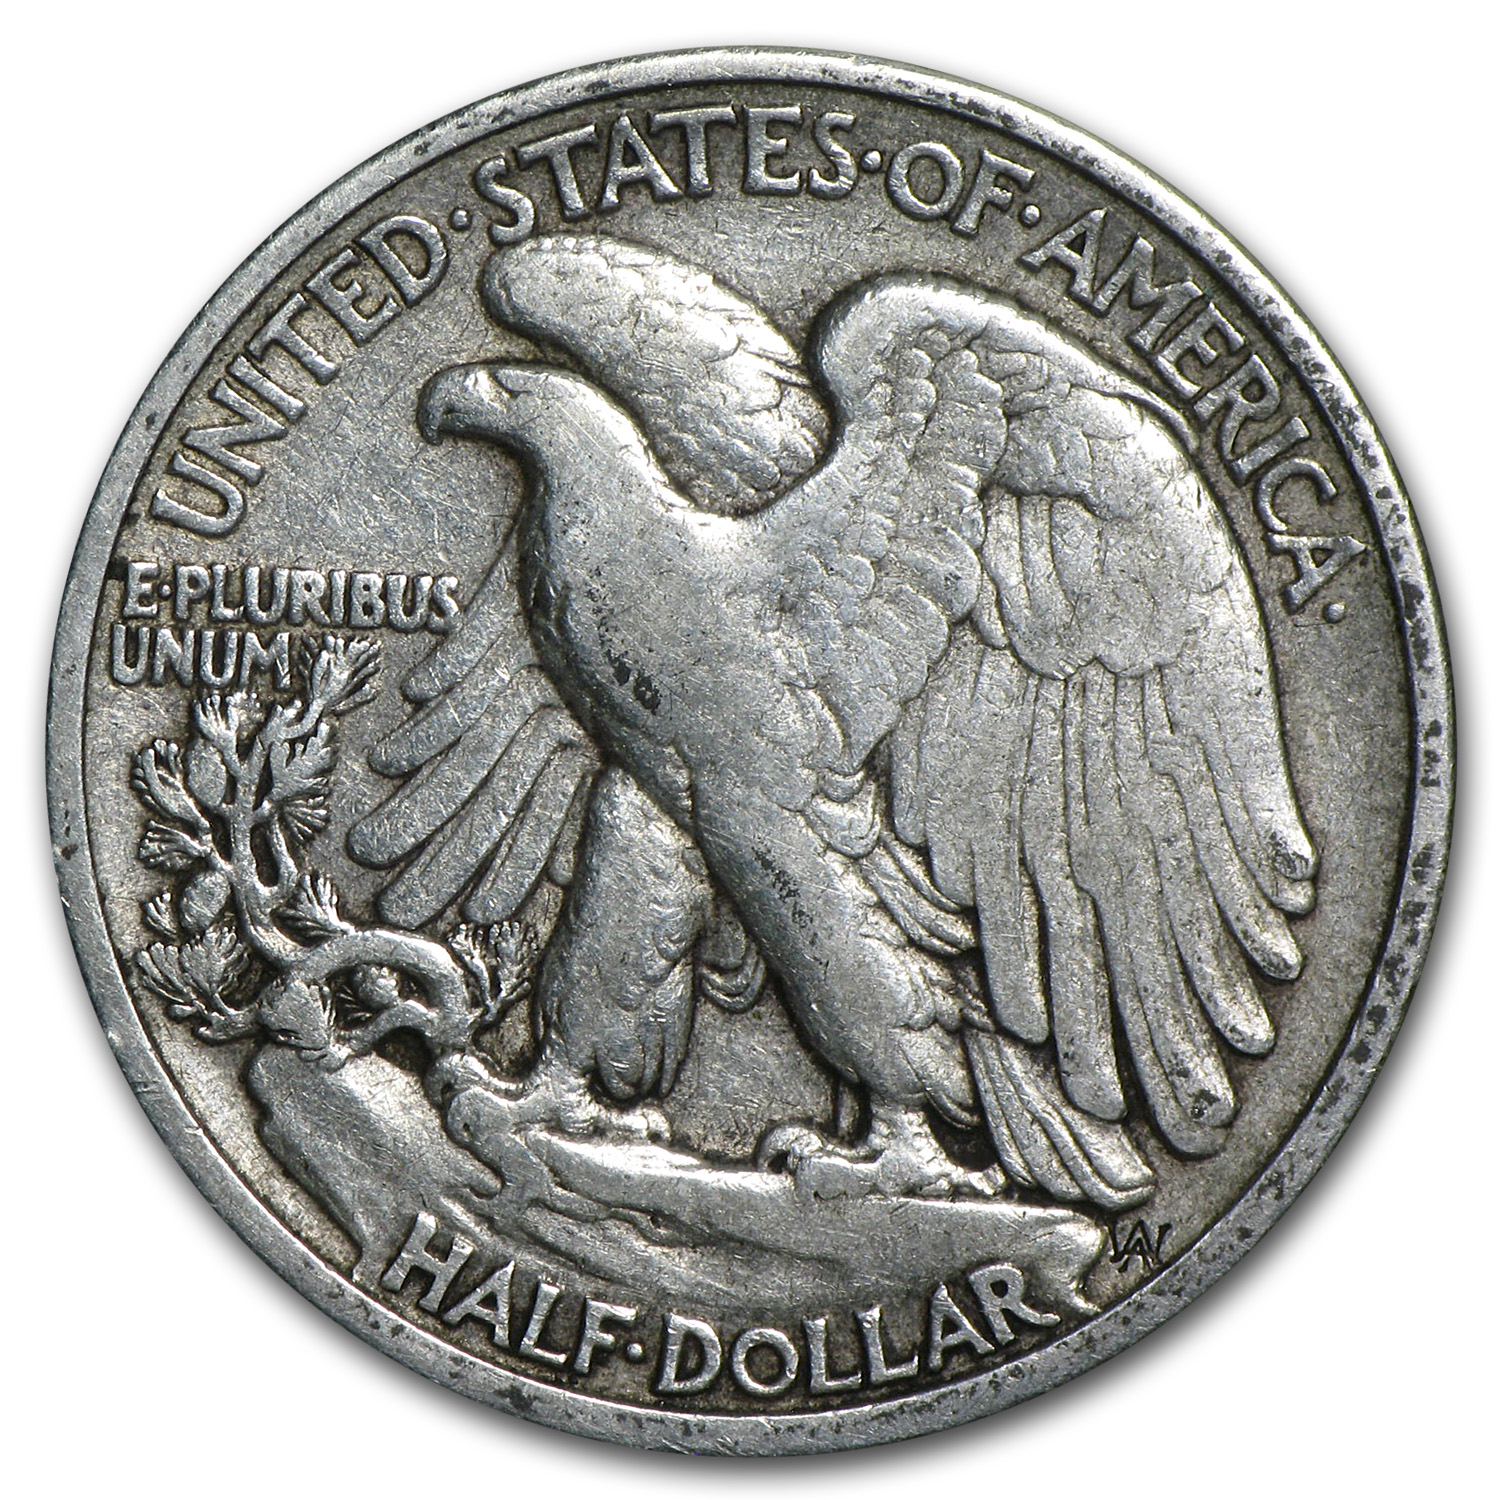 1916-D Walking Liberty Half Dollar - Fine